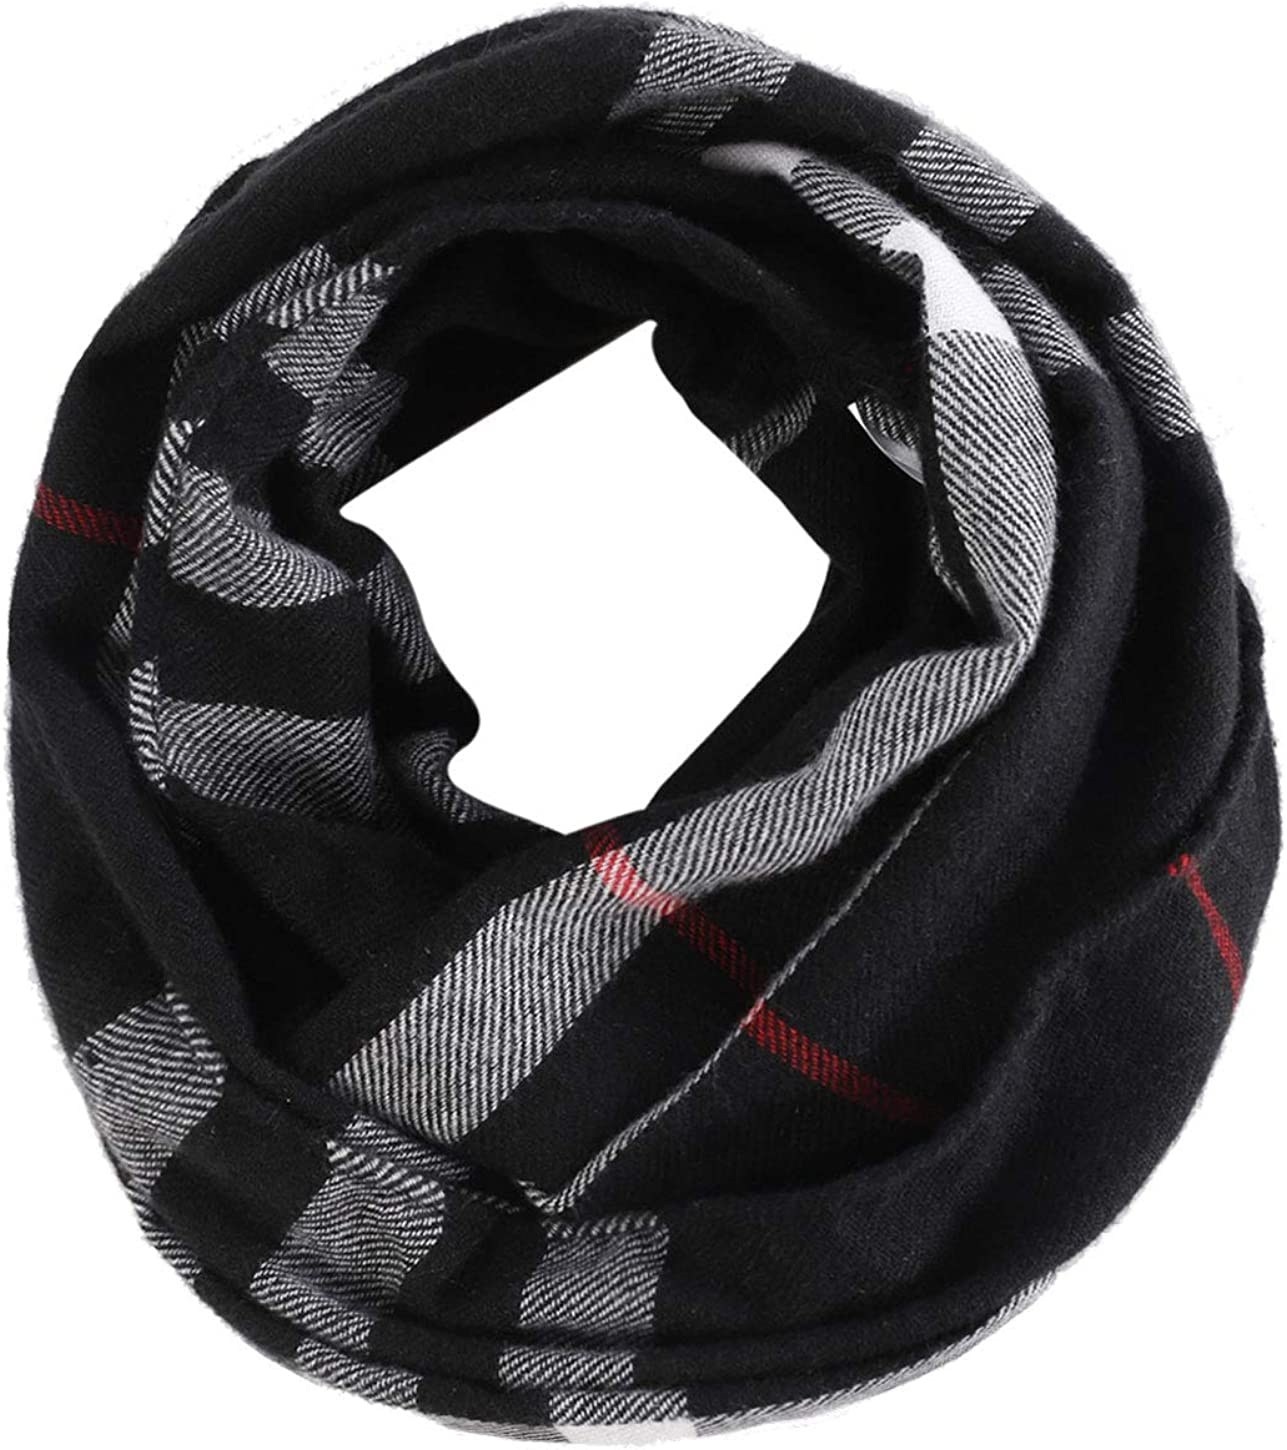 Toddler Girl Boy Infinity scarf for Soft Popular brand Challenge the lowest price Cozy winter Wa Autumn